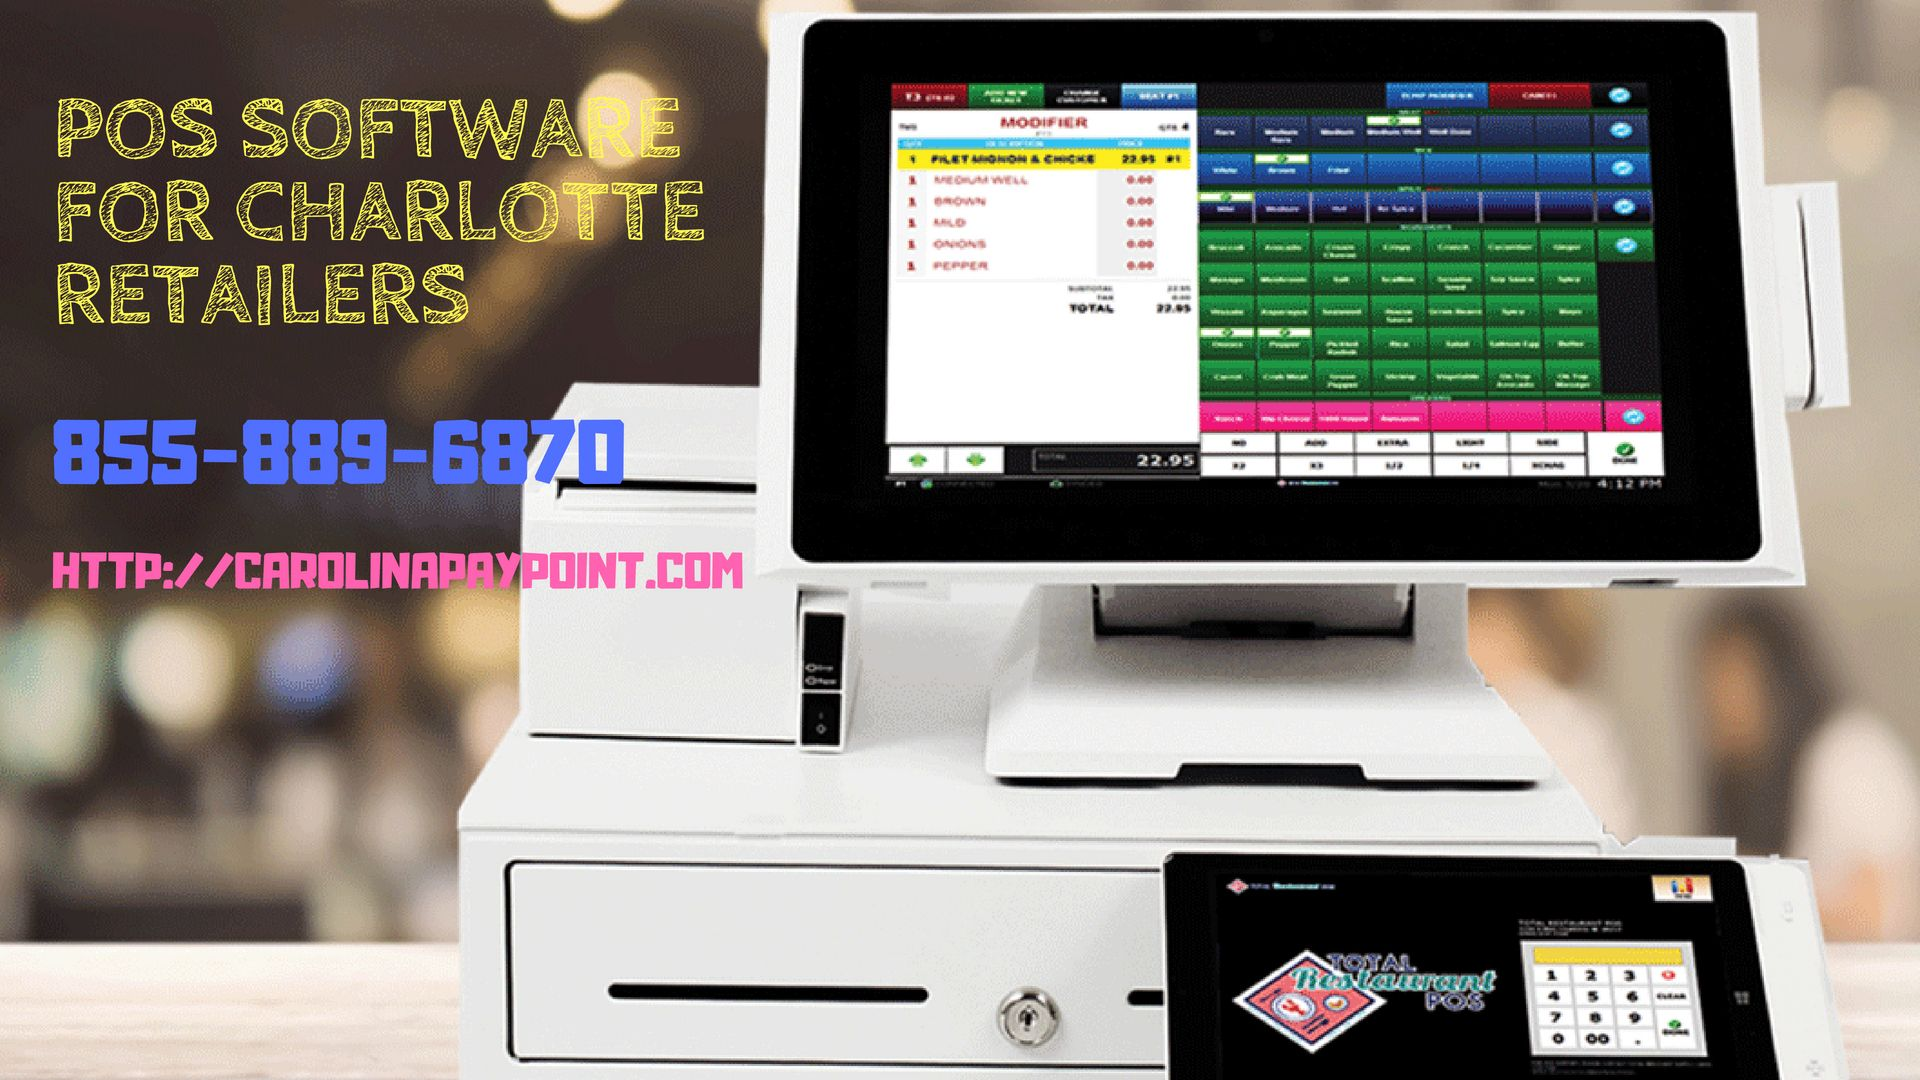 Pin on POS Software for Charlotte Retailers